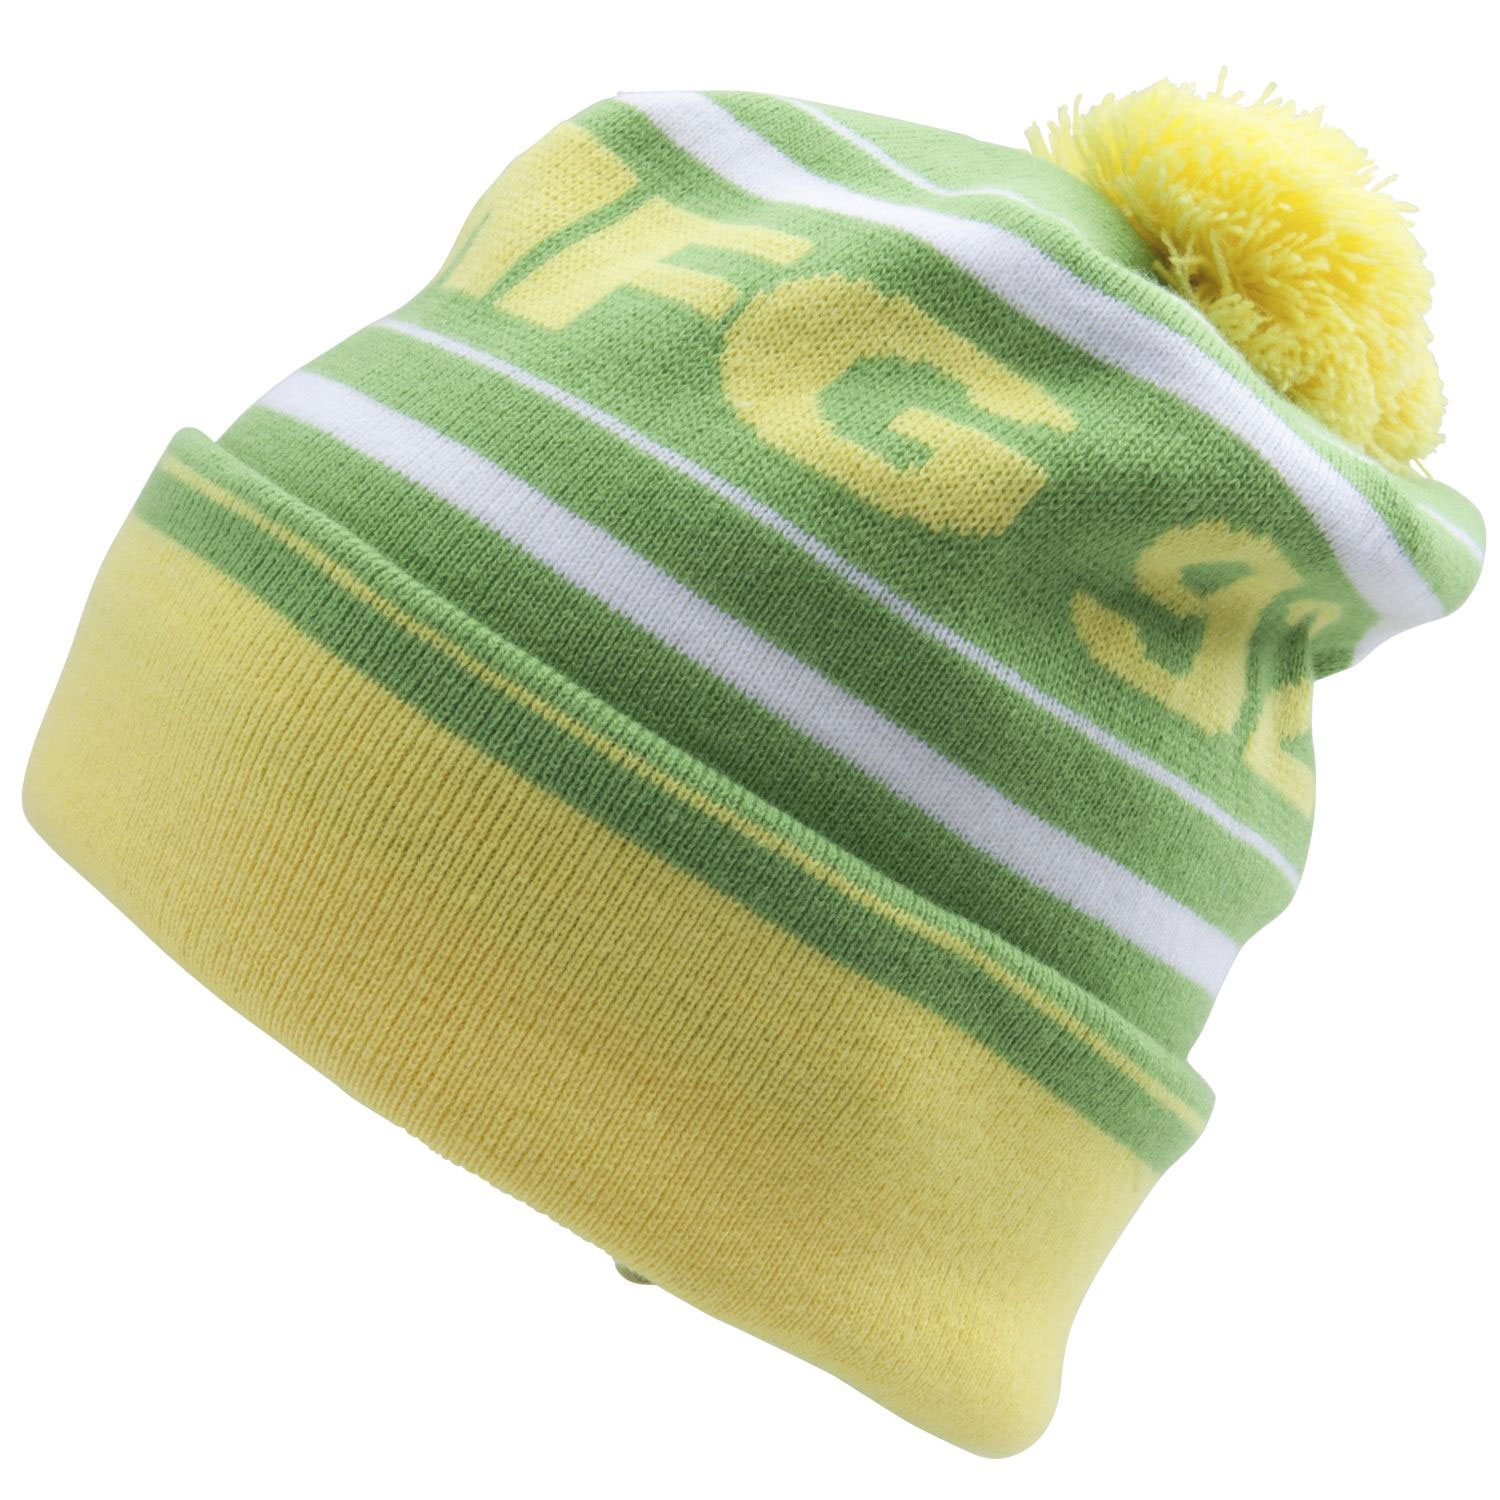 Key Features of the Ride Retro Beanie: Medium-Weight 100% Acrylic Longer Length to fold Up or Wear Long - $9.95